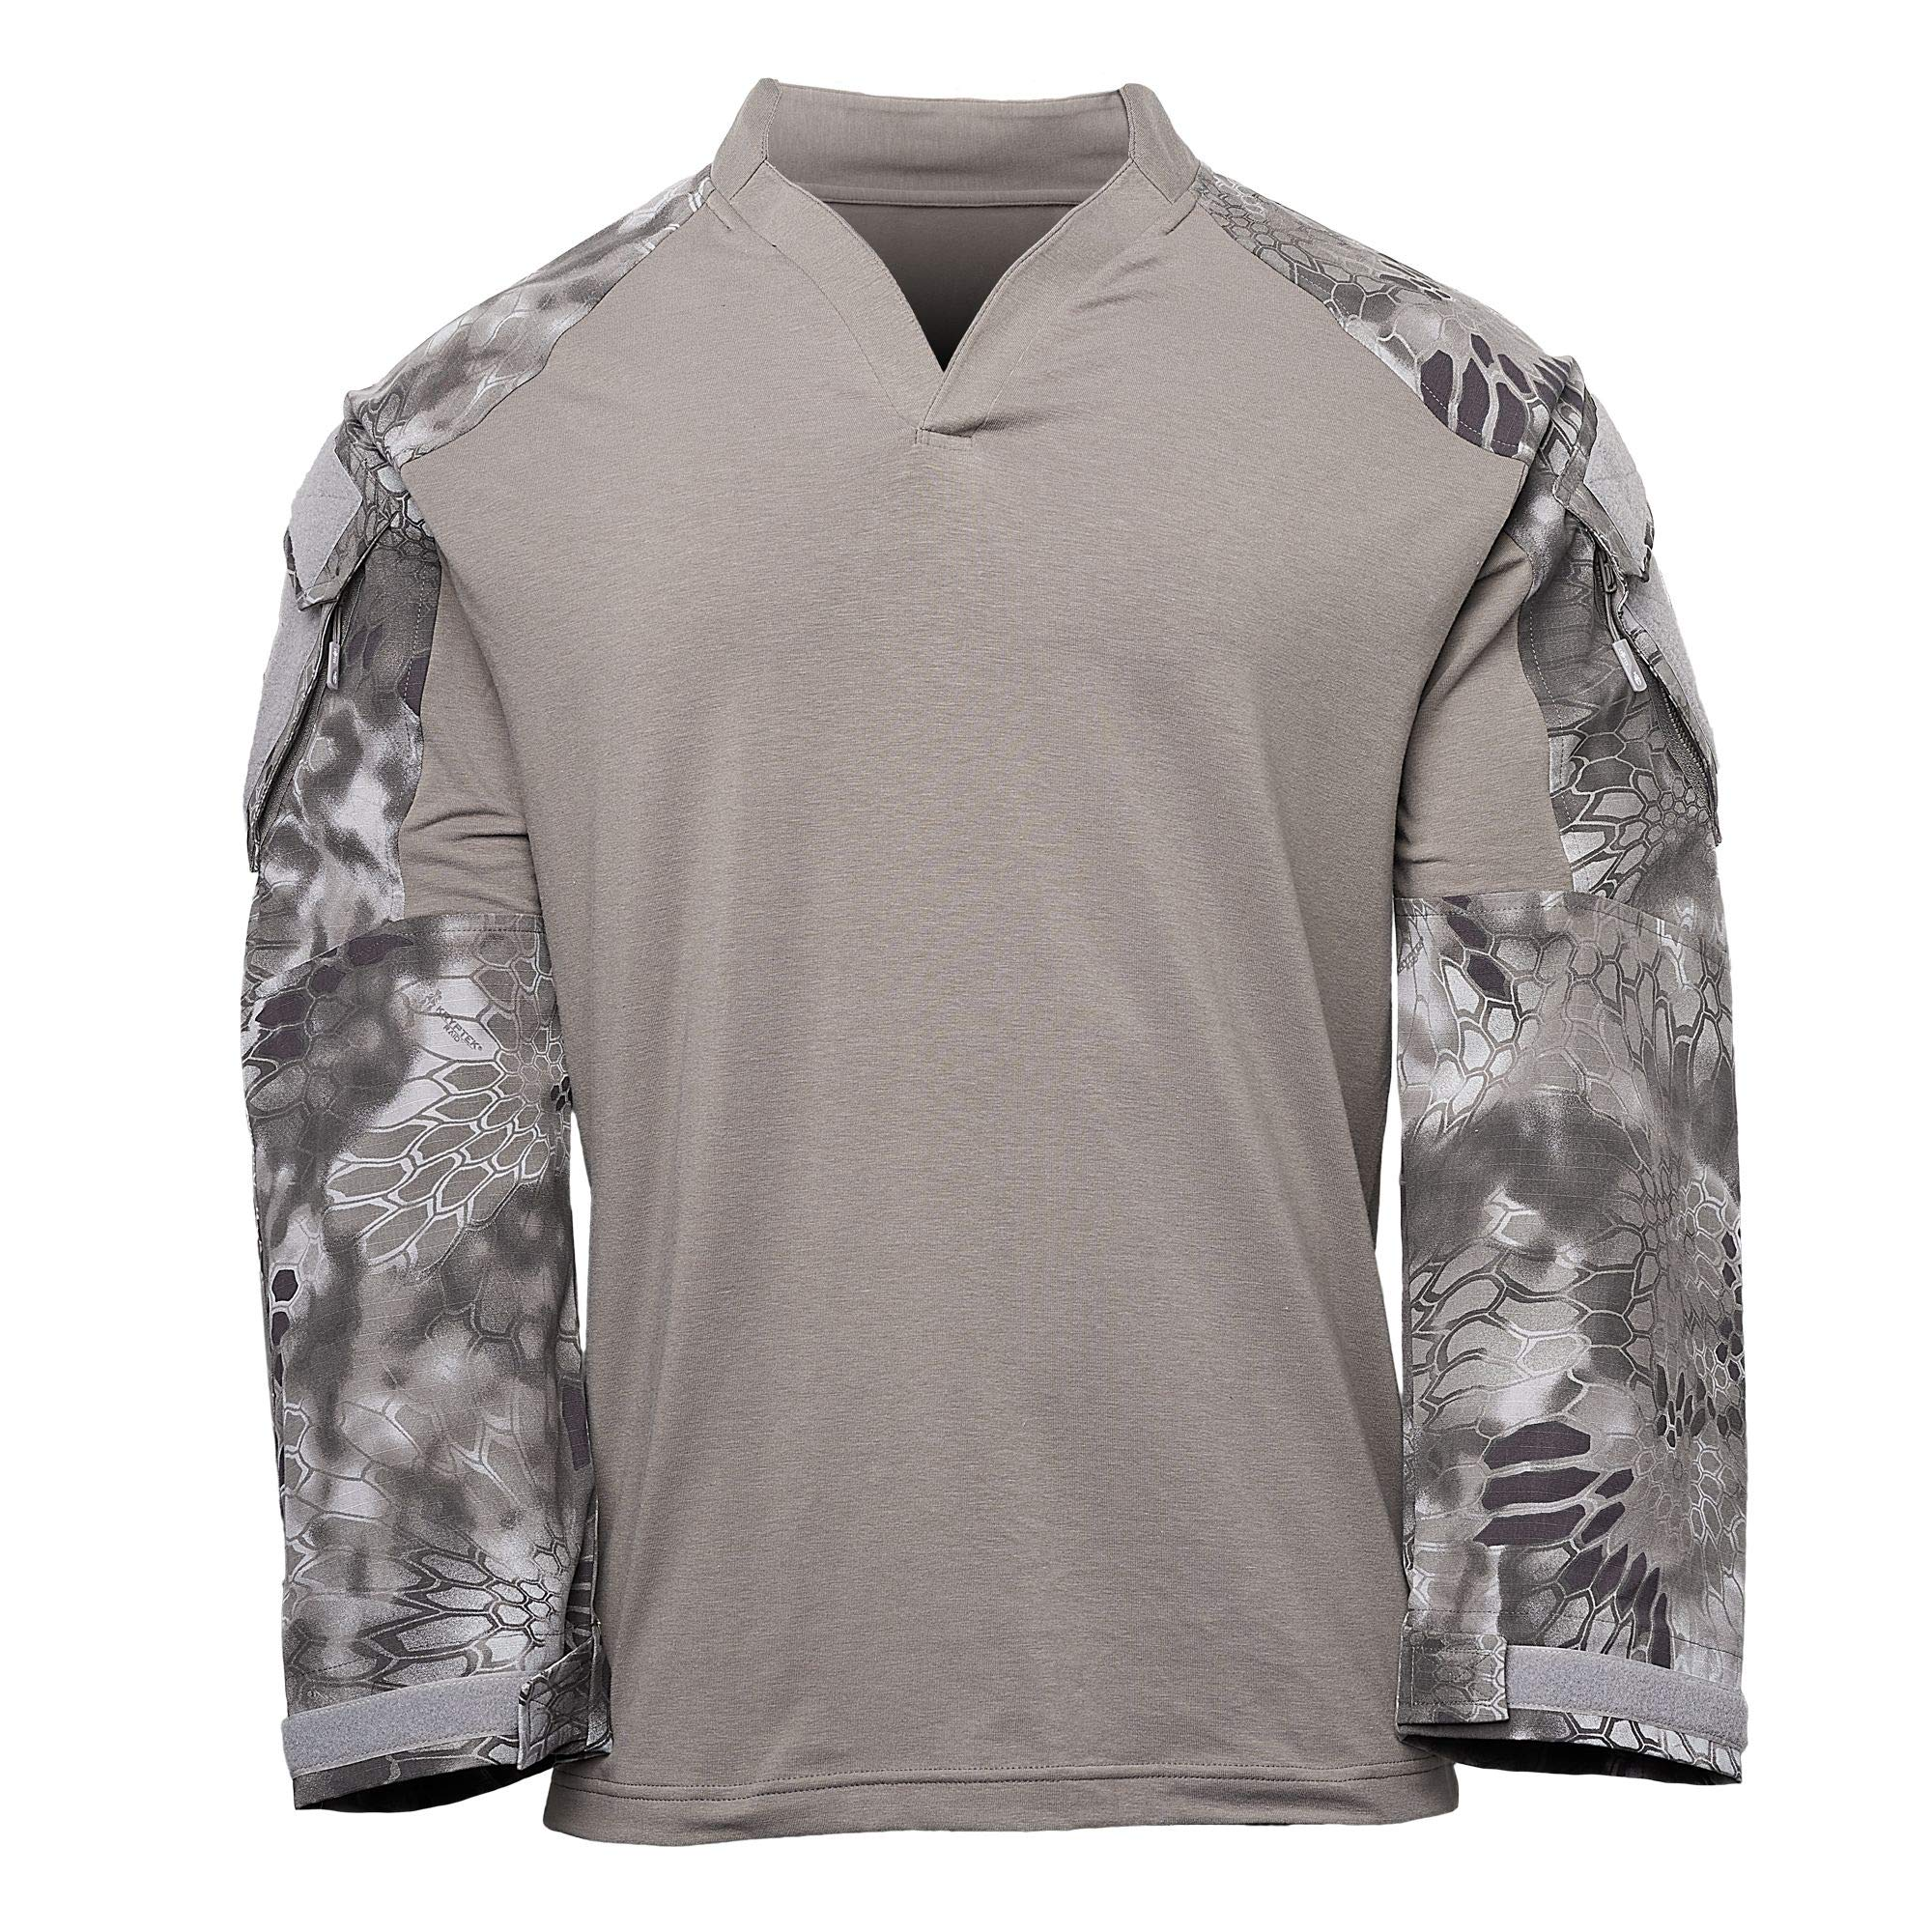 Kryptek Tactical LS Rugby Long Sleeve Shirt (Tactical Collection), Dark Charcoal/Raid, M by Kryptek